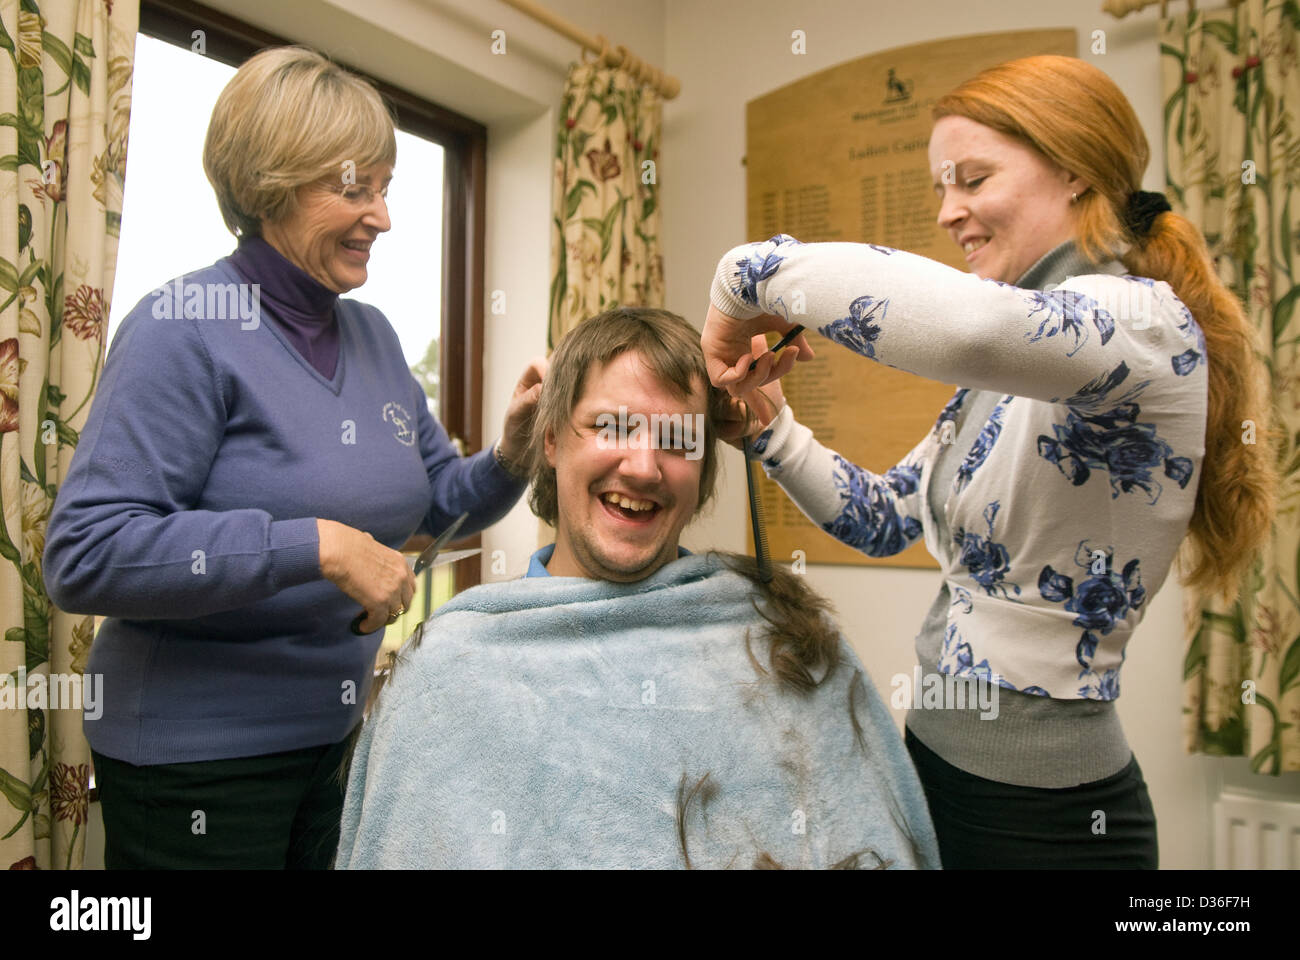 26 year old man in process of having all his hair shaved off for cancer charity, Bordon, Hampshire, UK. Stock Photo